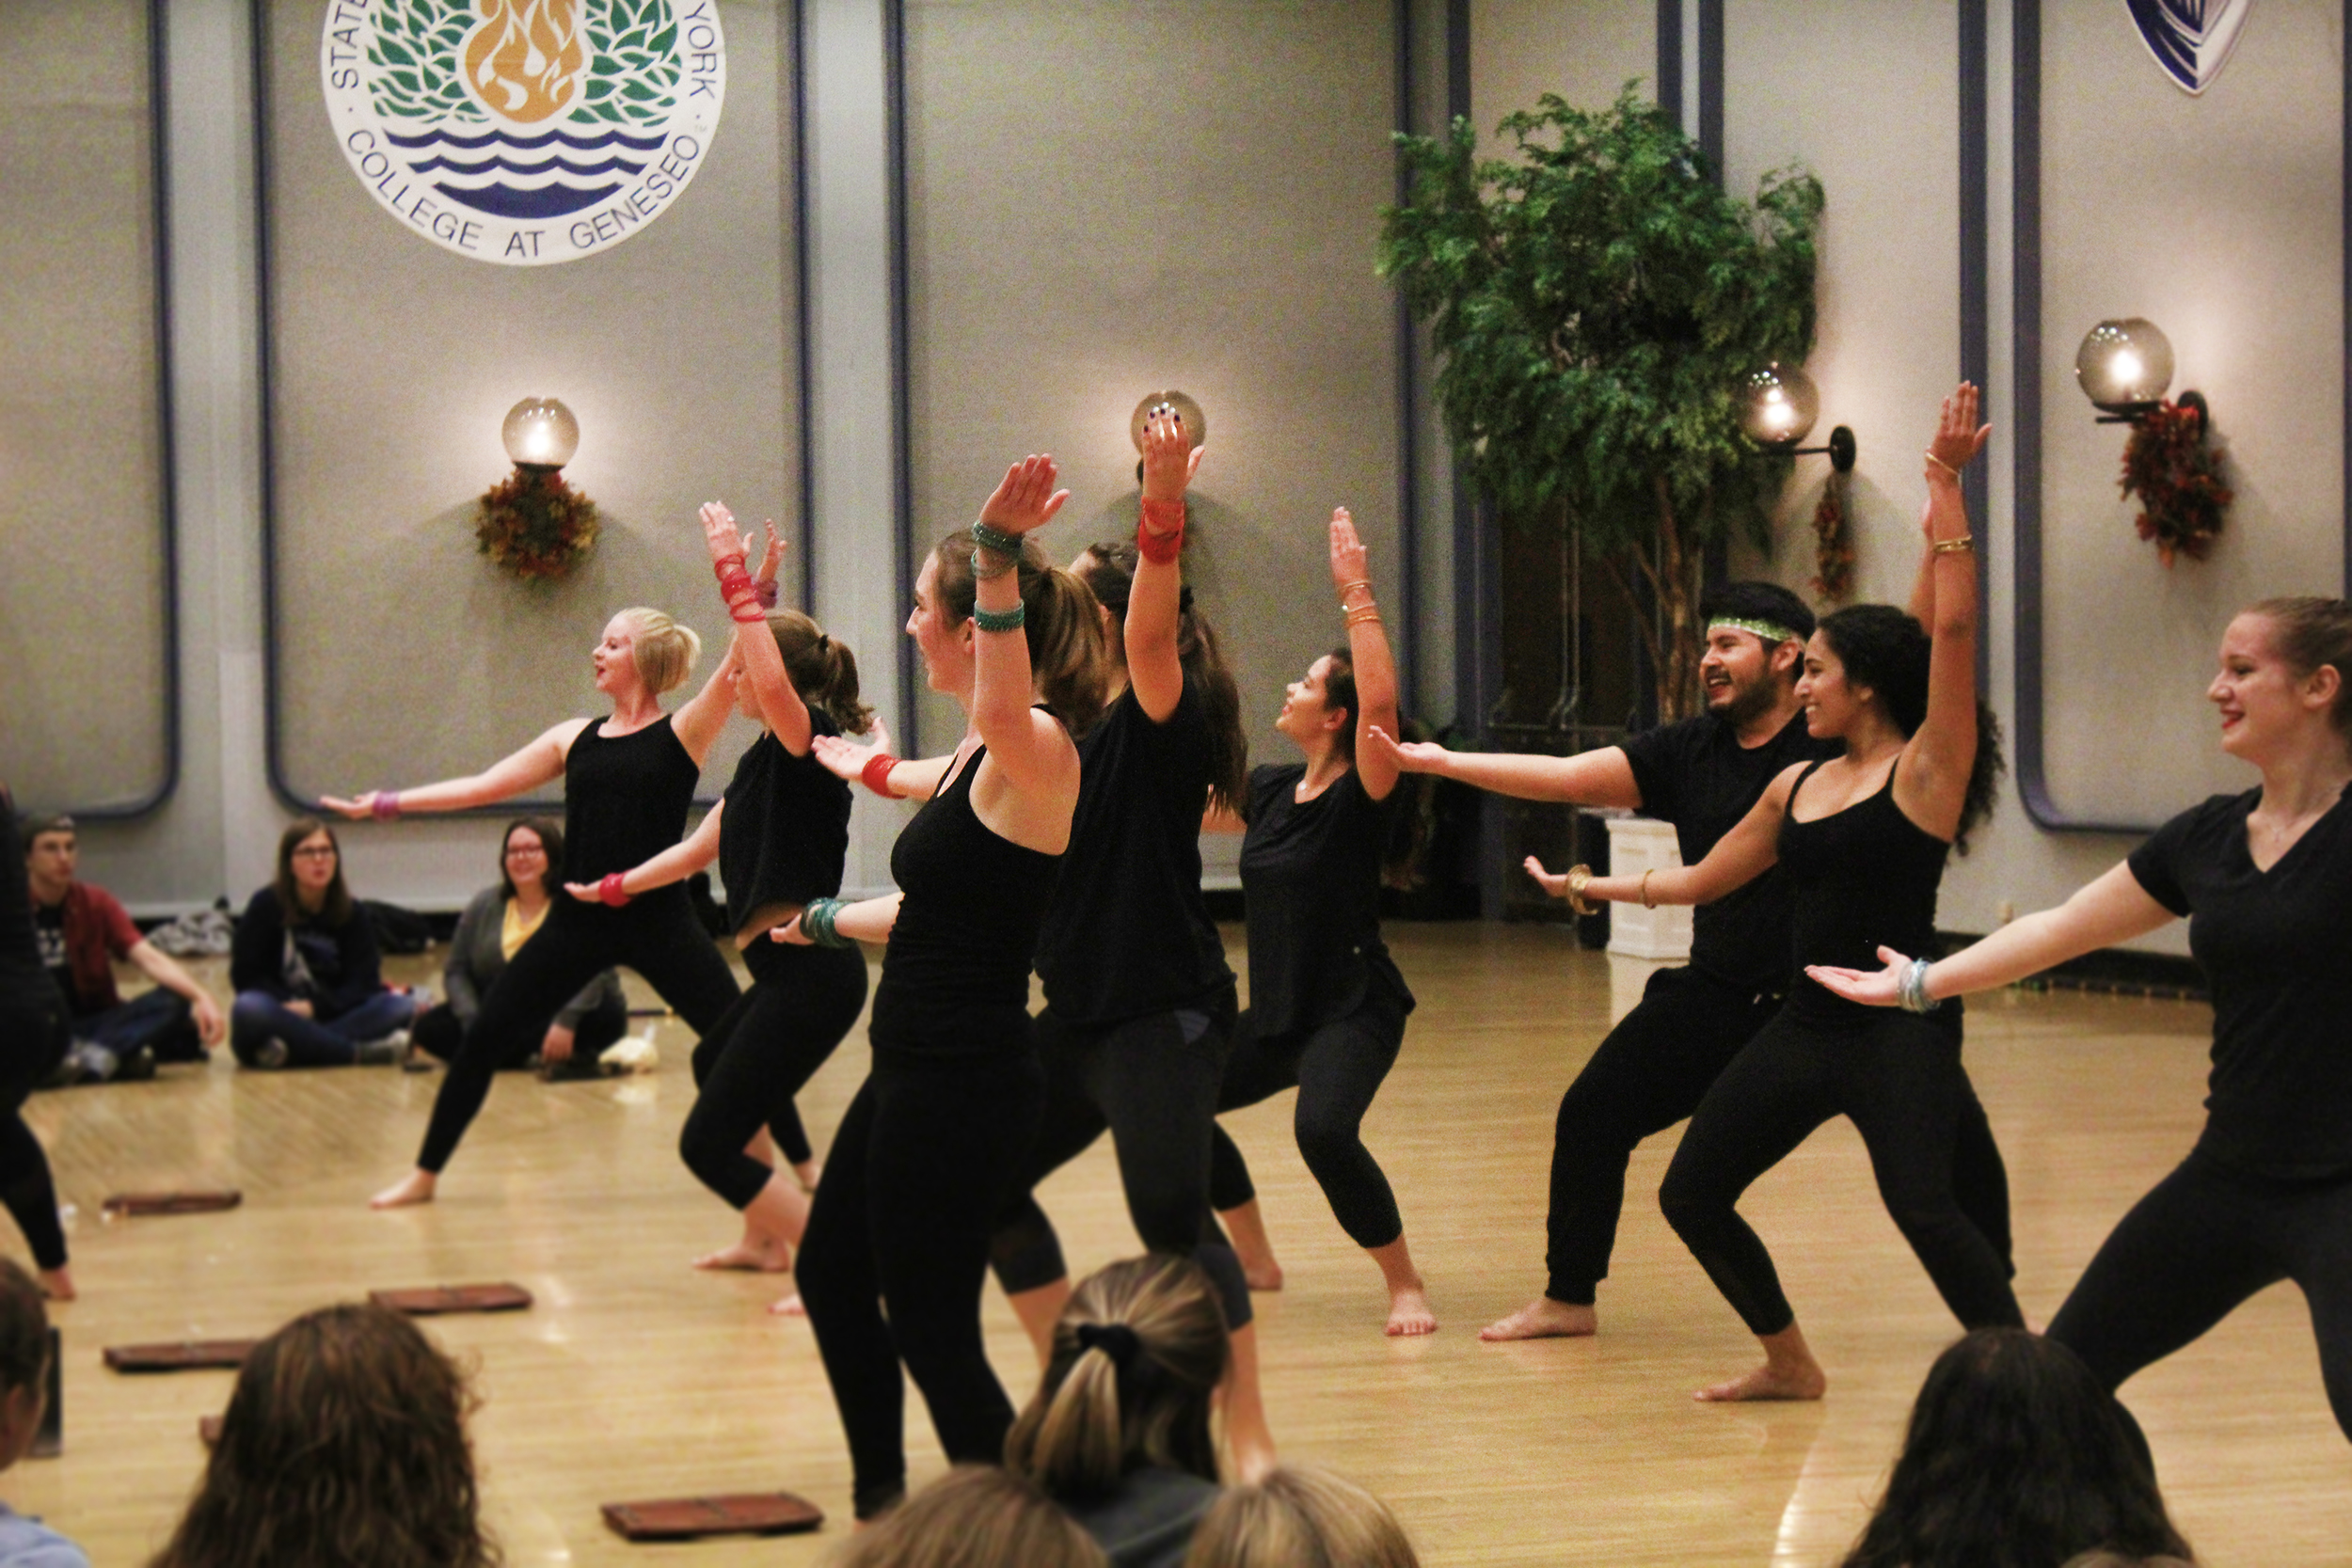 Gajjda Bhangra (pictured above) was one of the many student organizations who performed at Geneseo's first ever Fall Fest that took place in the Union Ballroom on Thursday Oct. 11. The event consisted of various musical performances, food trucks and fall-themed activities. (Annie Renaud/Staff photographer)